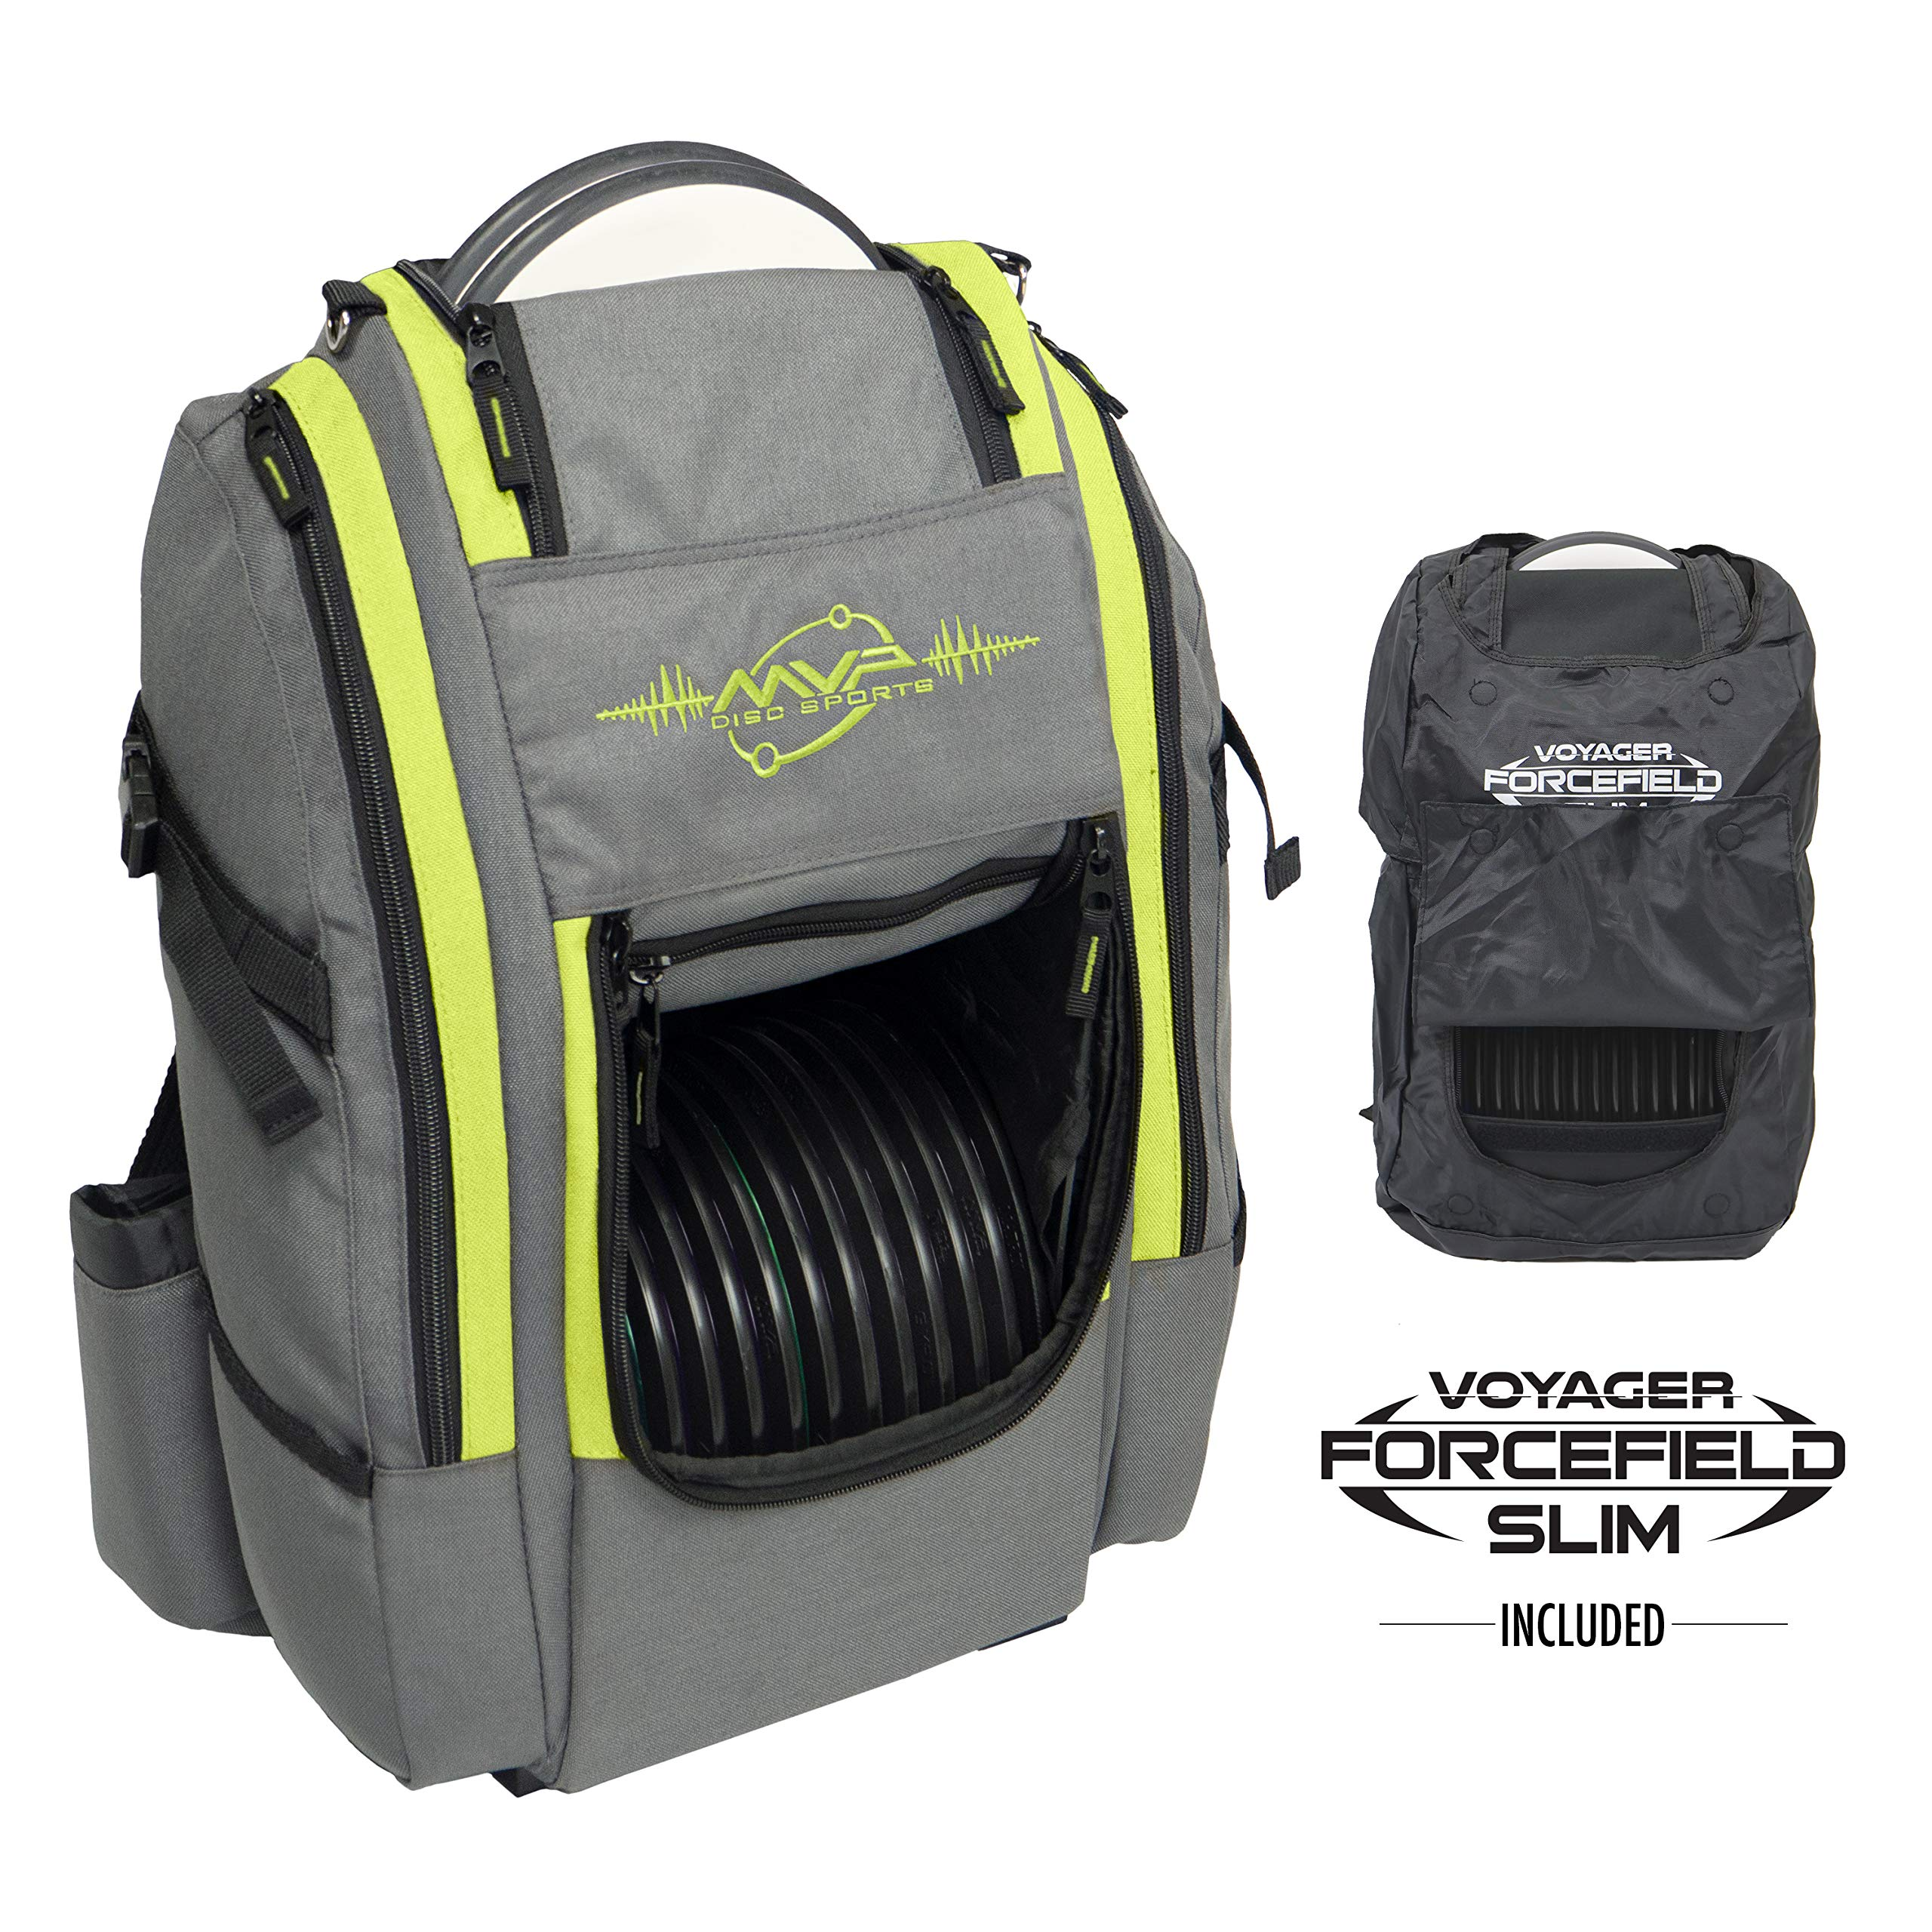 MVP Disc Sports Voyager Slim Bag (Gray/Lime) + Forcefield by MVP Disc Sports